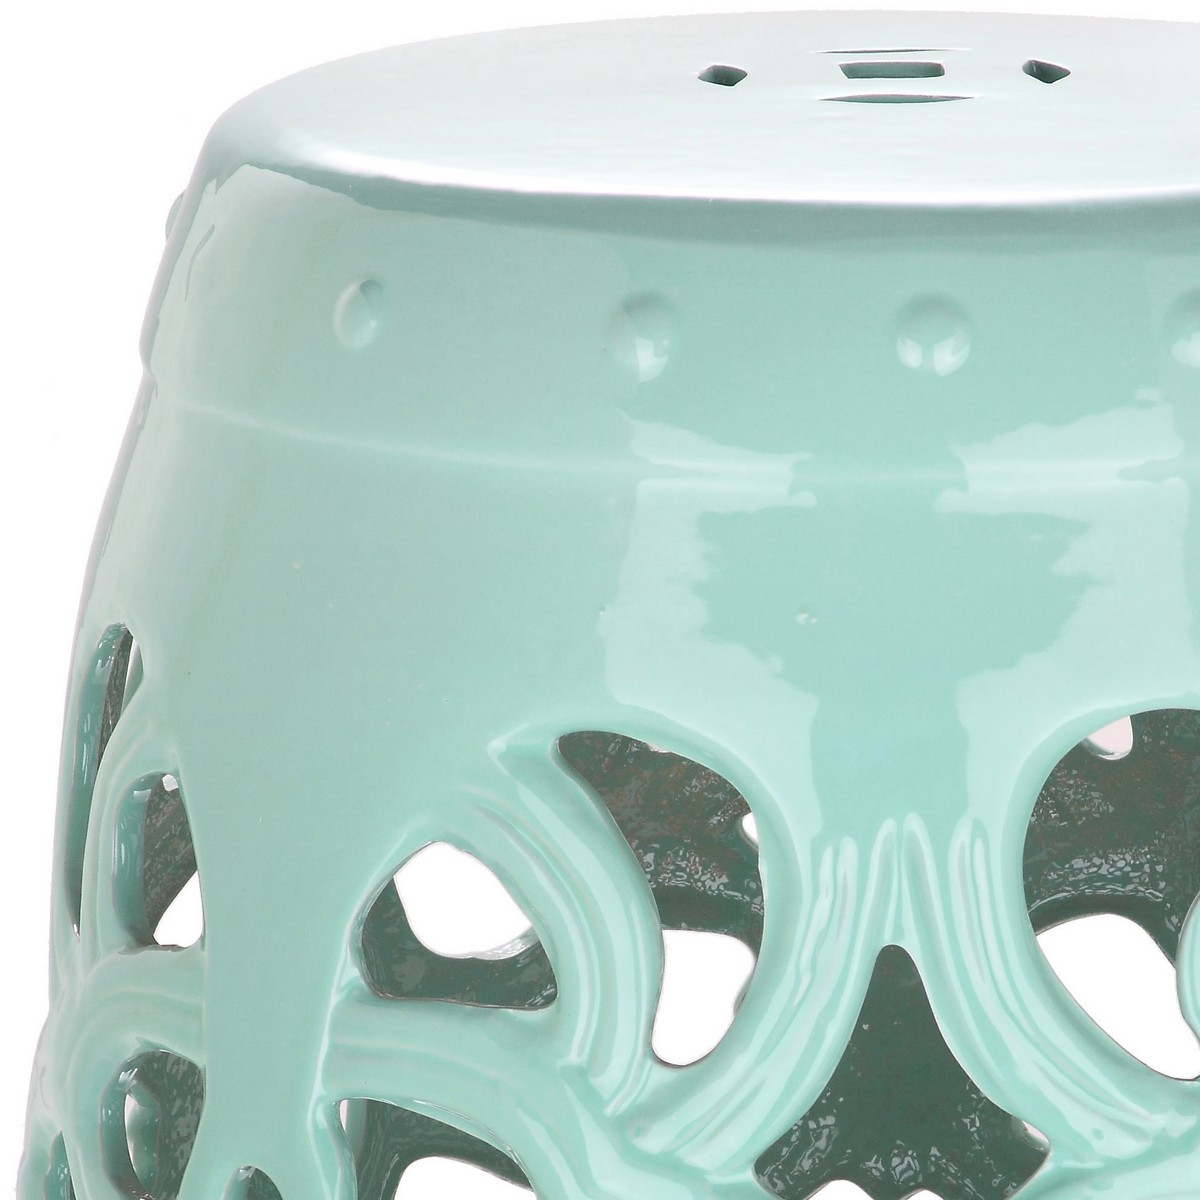 Perked Up In Pretty Light Blue, The Ages Old Motif Of The Imperial Vine  Indoor Outdoor Garden Stool Will Add Fashion Punch To Any Home.